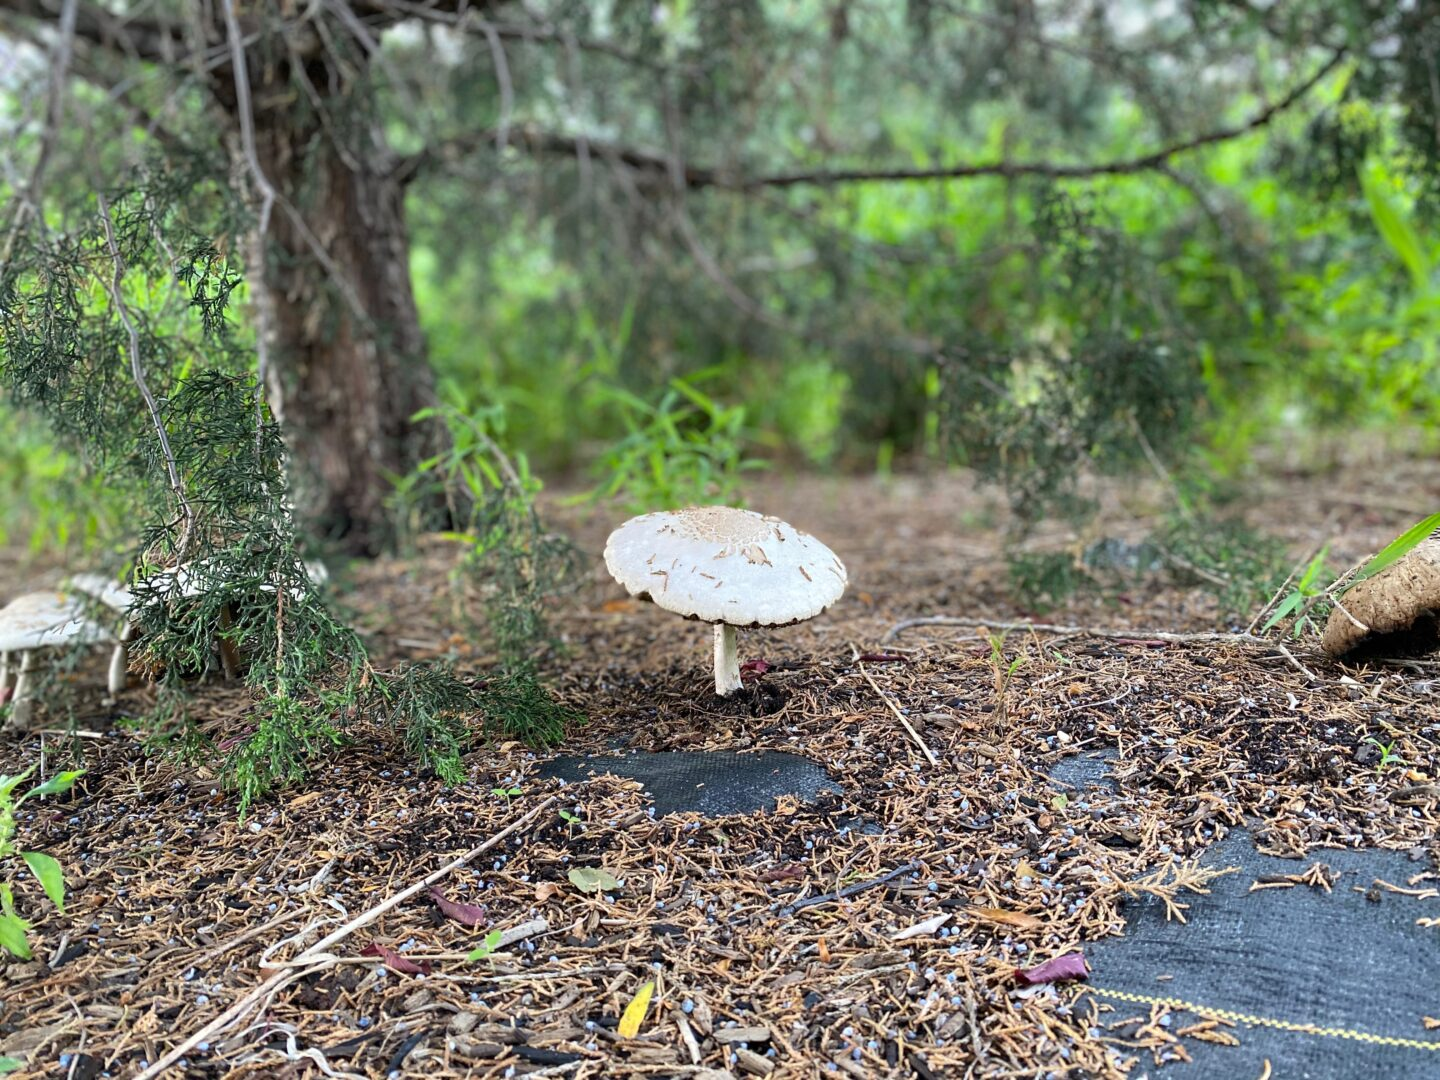 A large mushroom sits along the path in the Park